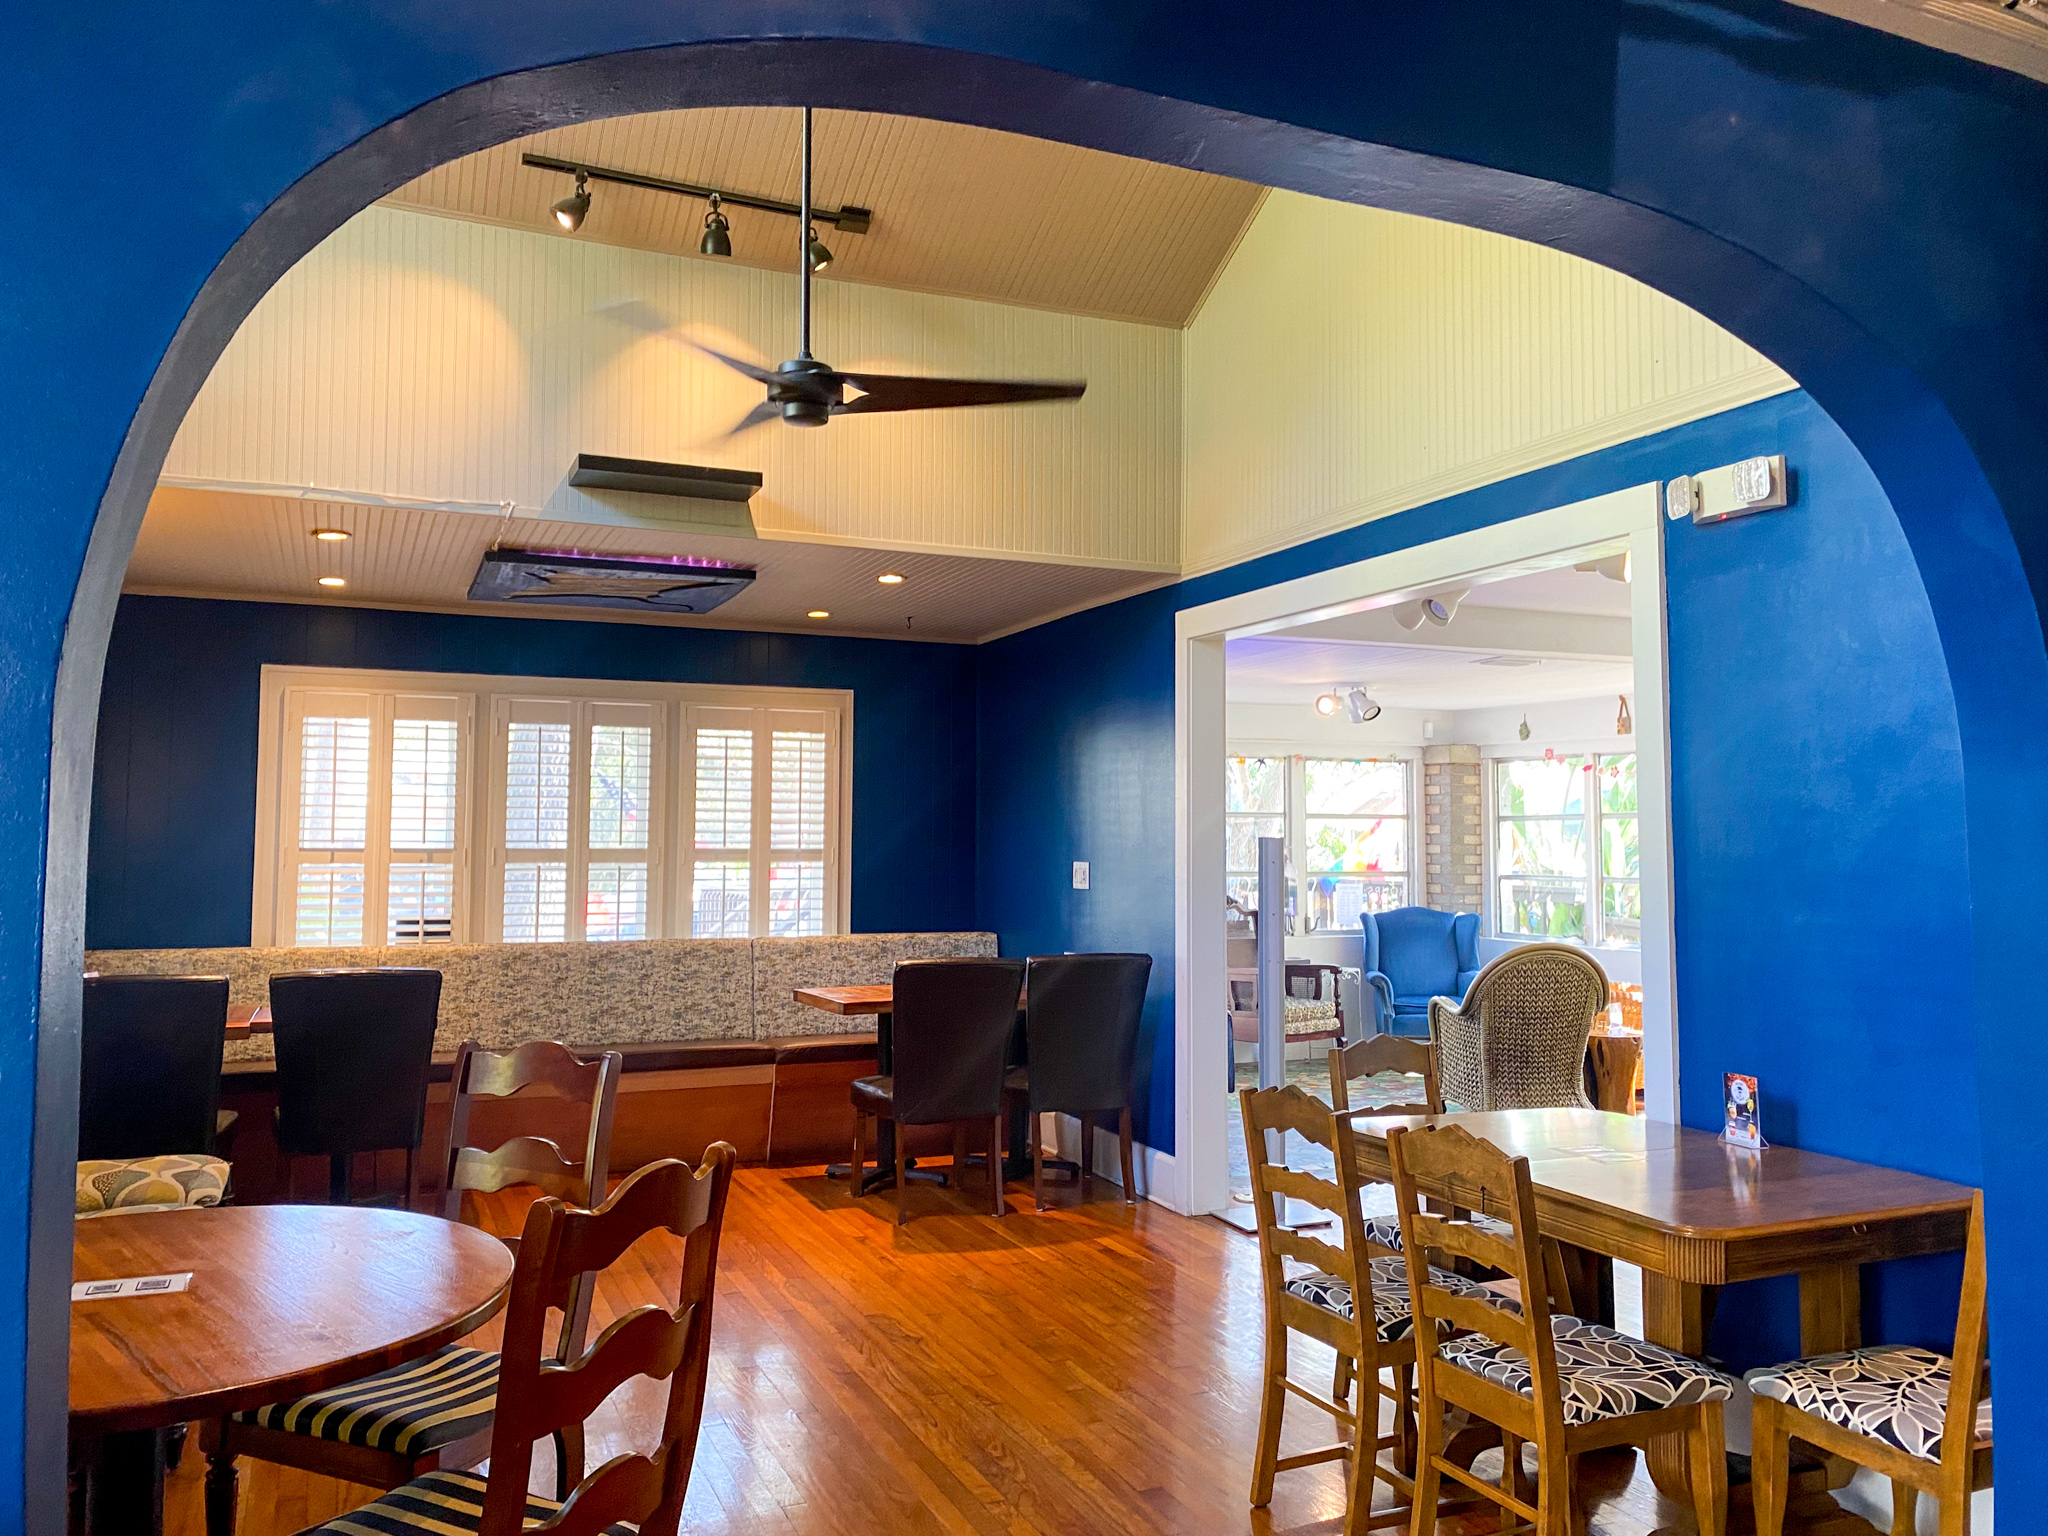 Gulfport Brewery and Eatery Interior